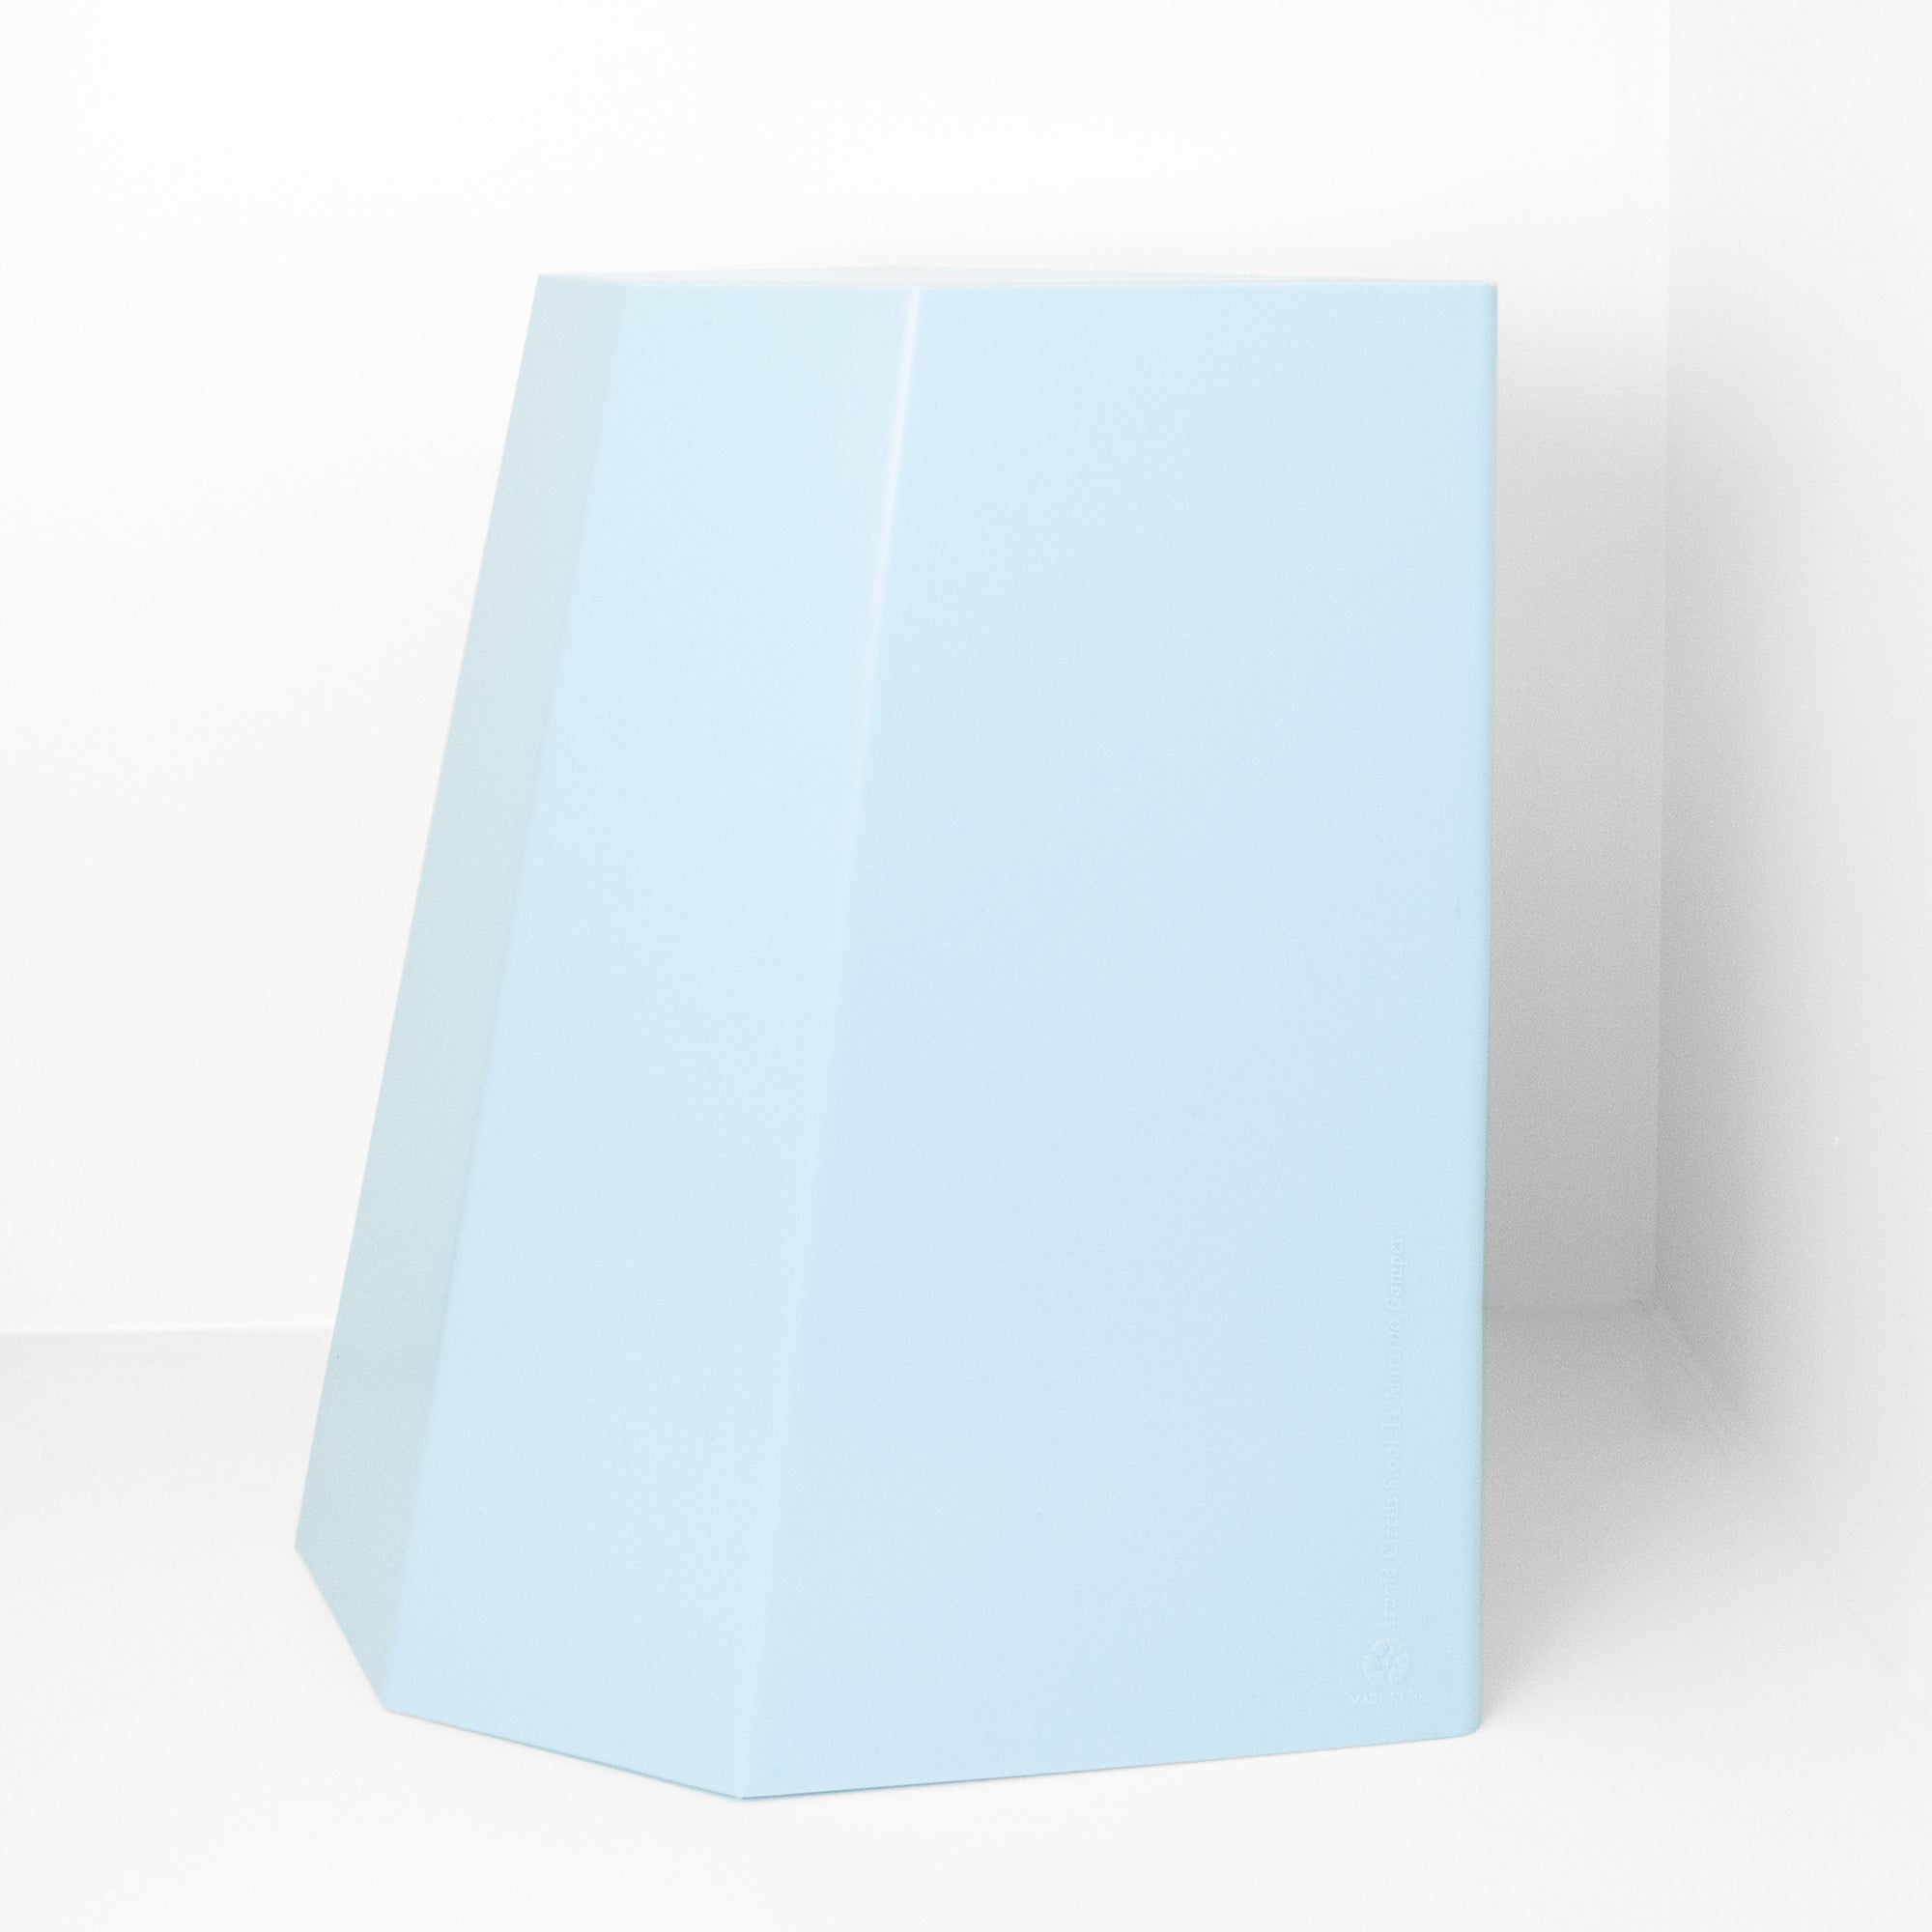 Martino Gamper Stool - Light Blue - Paper Plane - Mt Maunganui Stockist